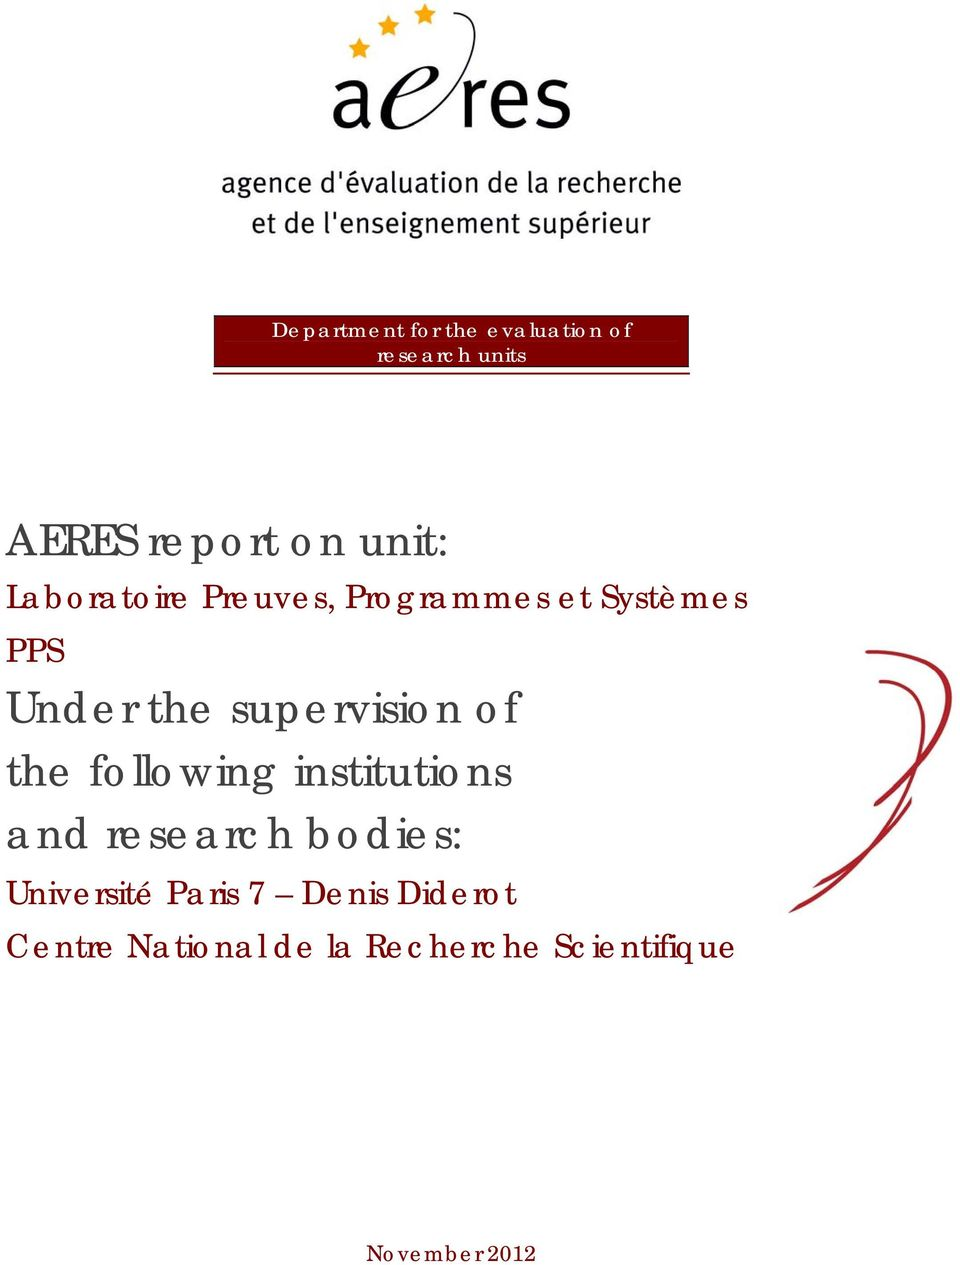 of the following institutions and research bodies: Université Paris 7